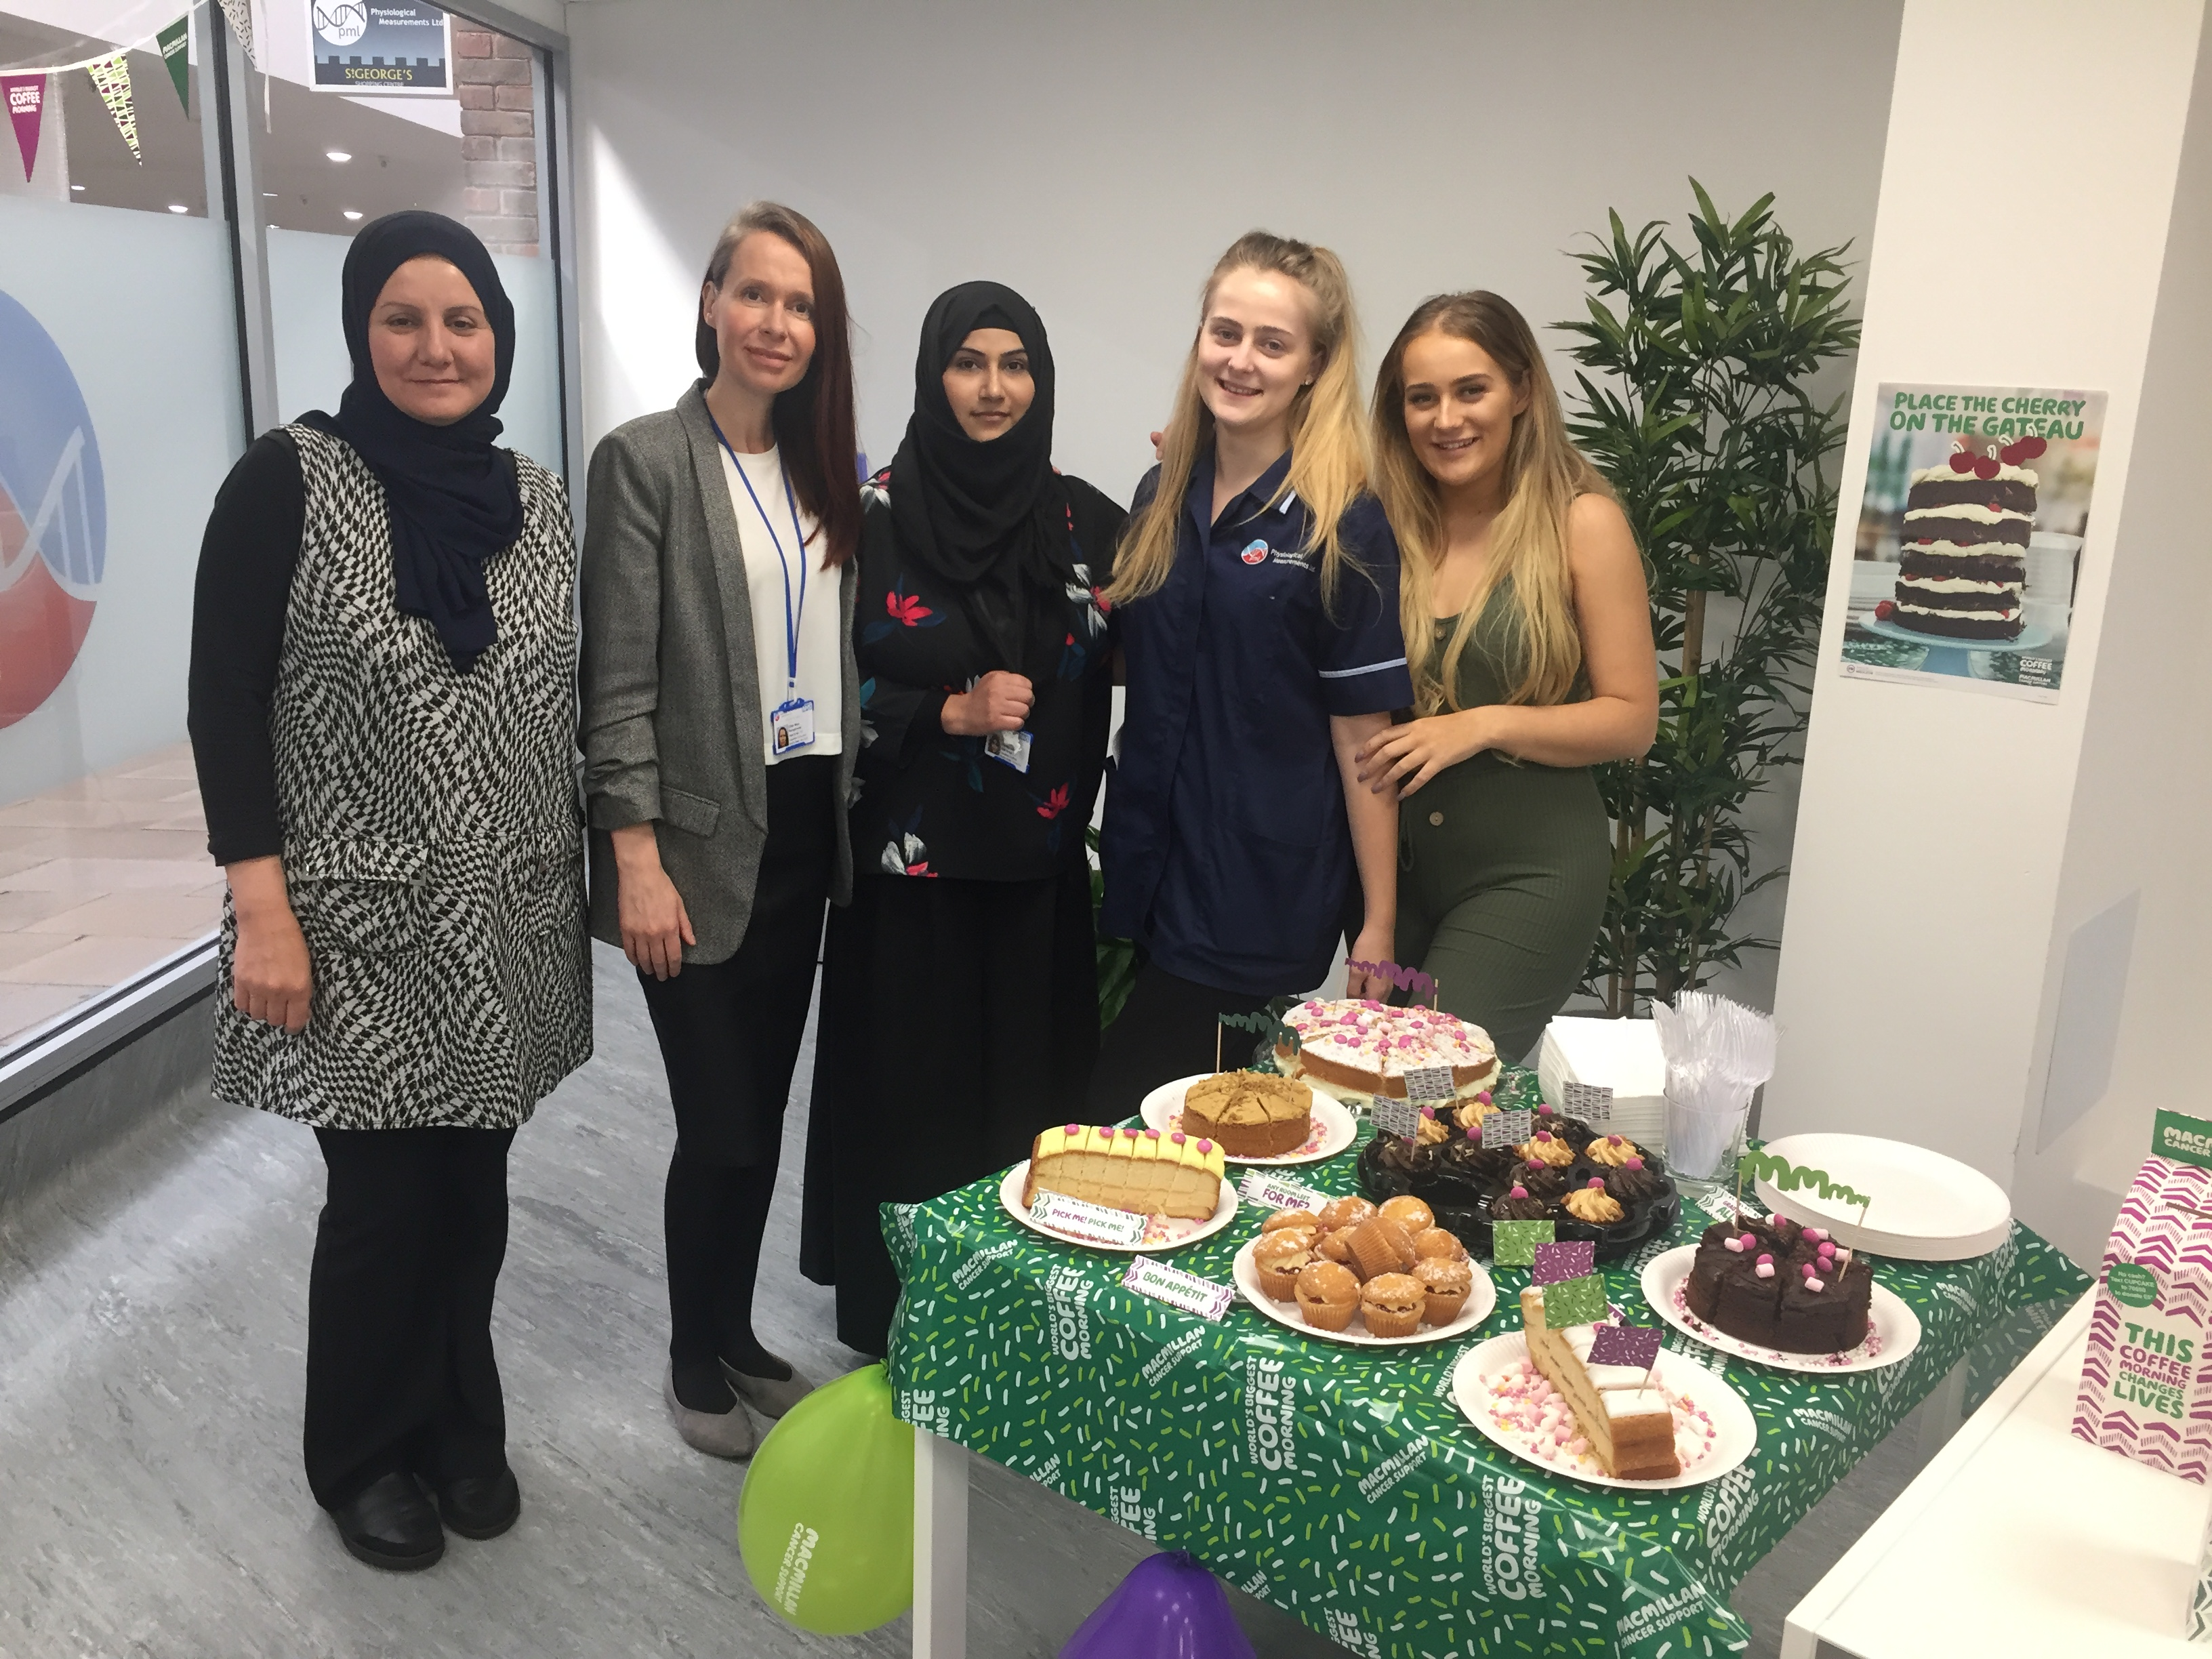 St Georges Macmillan coffee morning